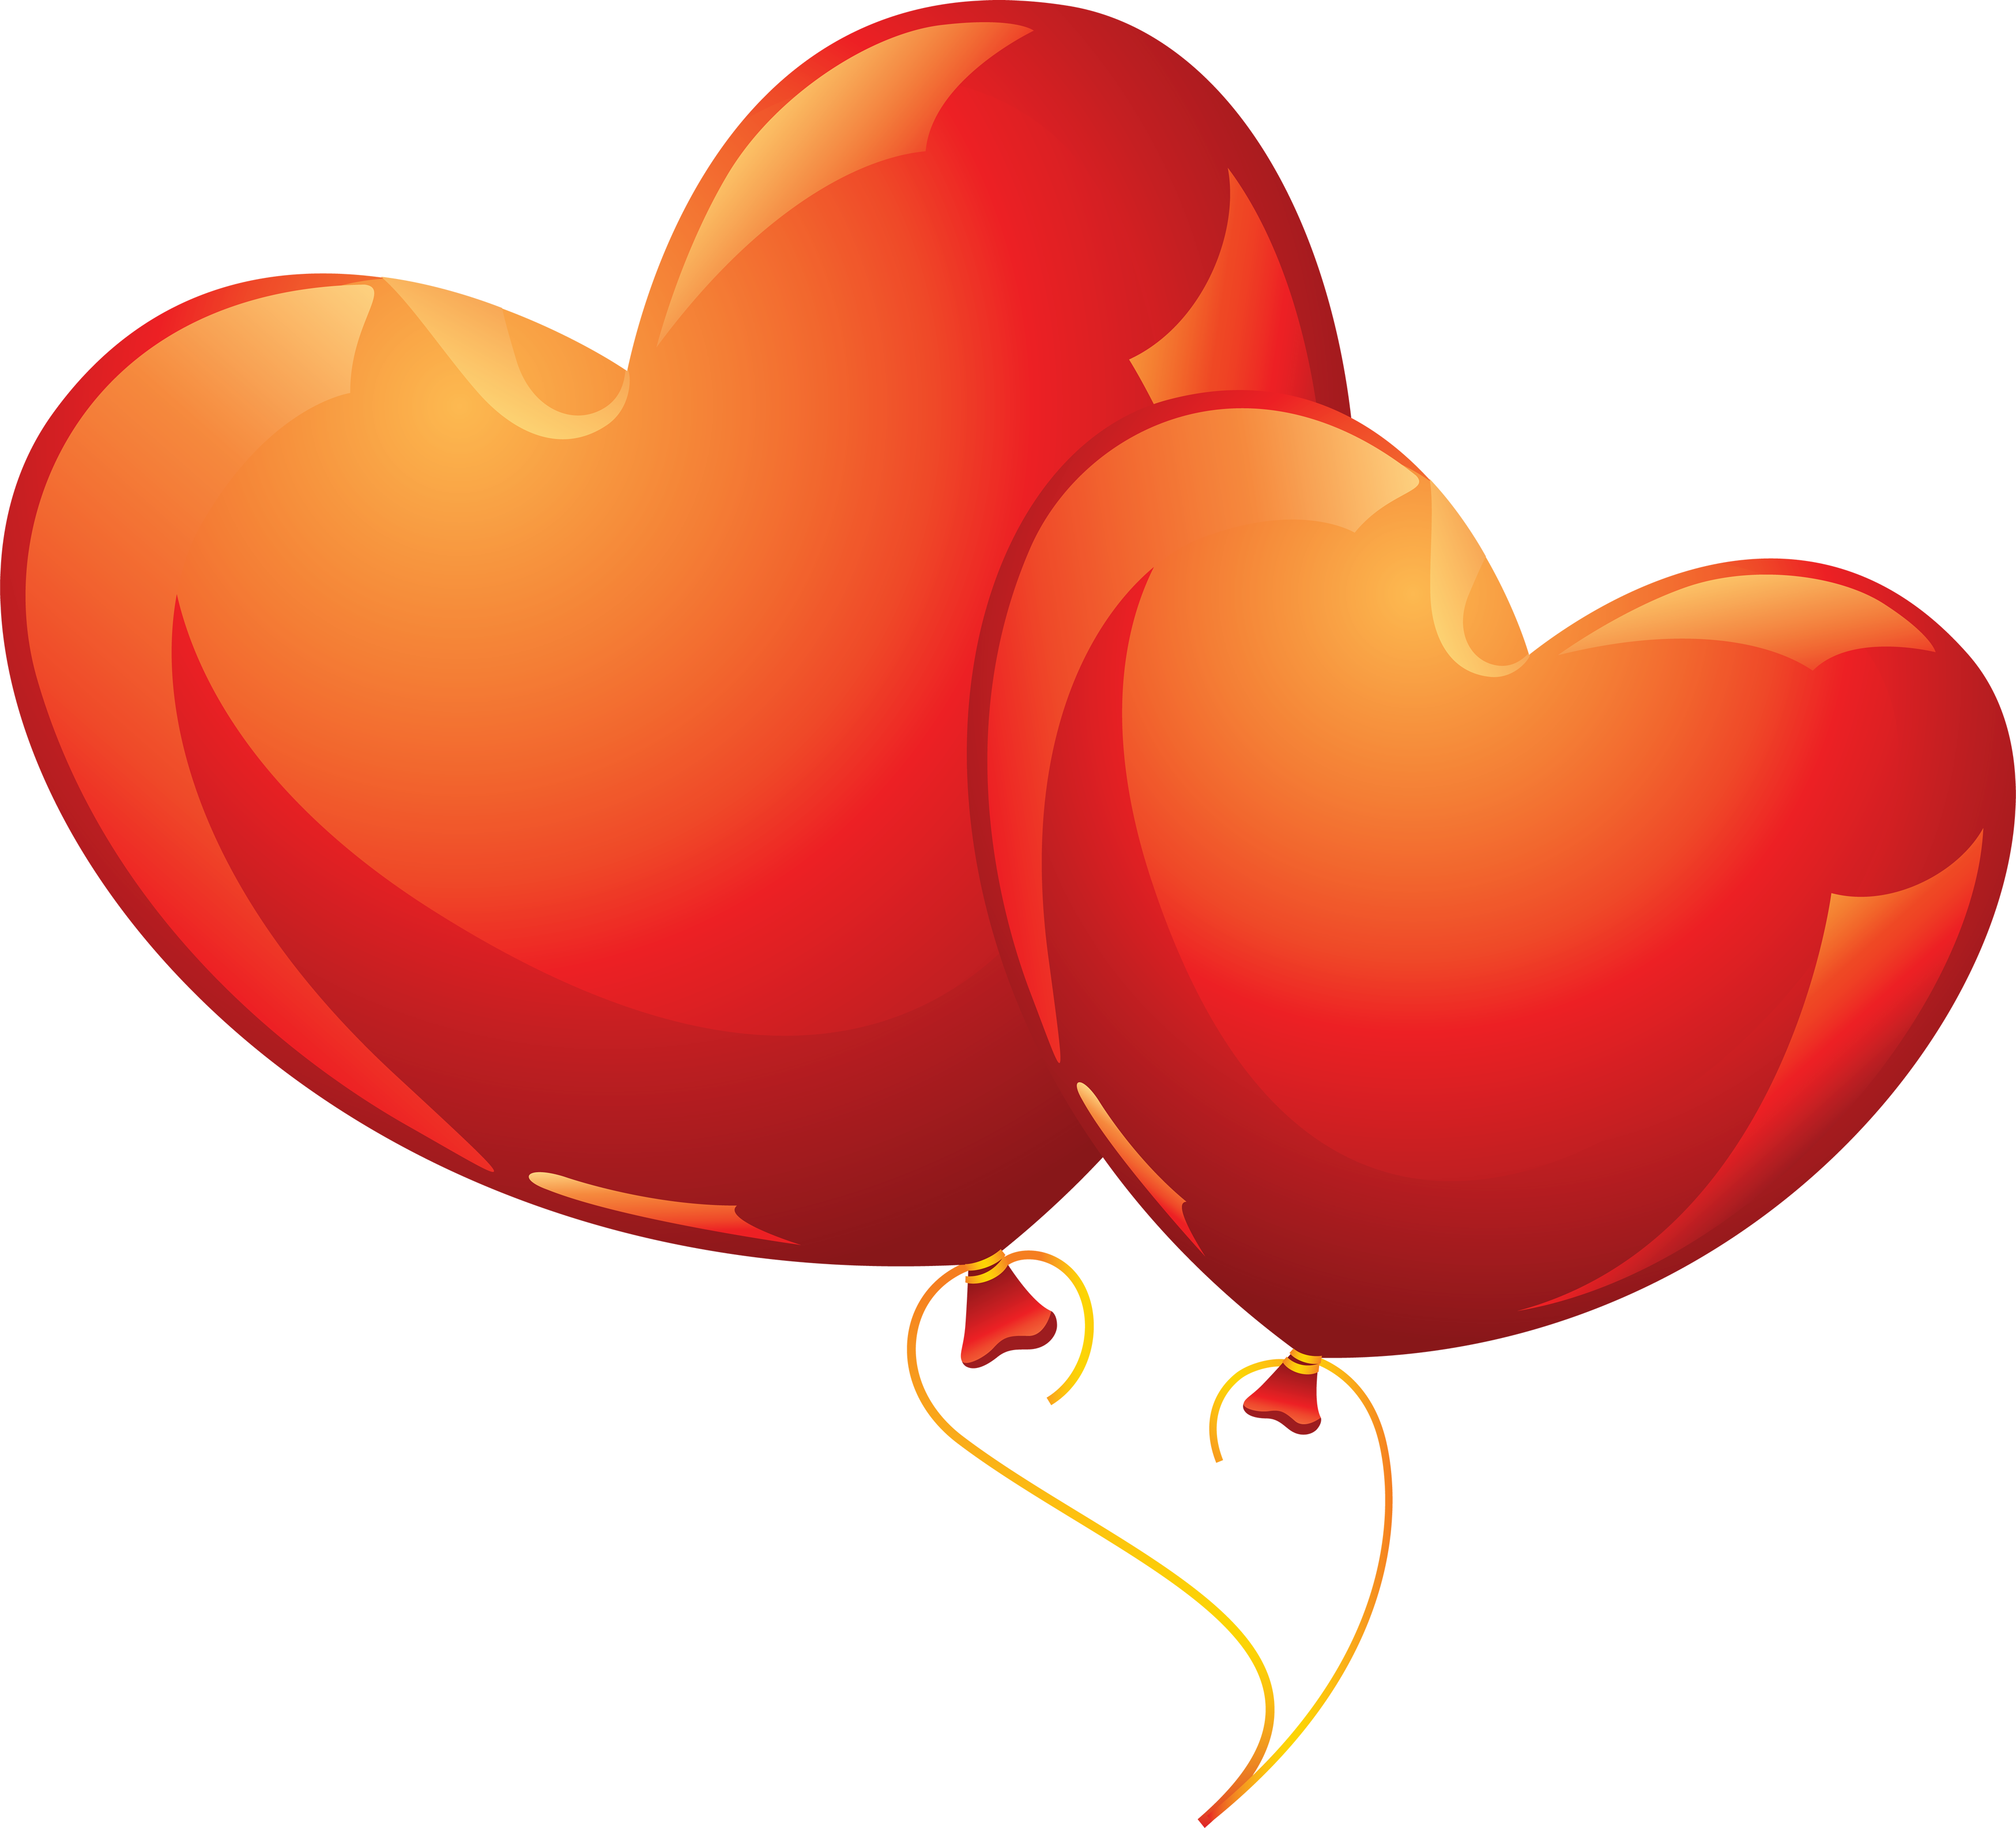 Balloon png transparent background. Images free picture download